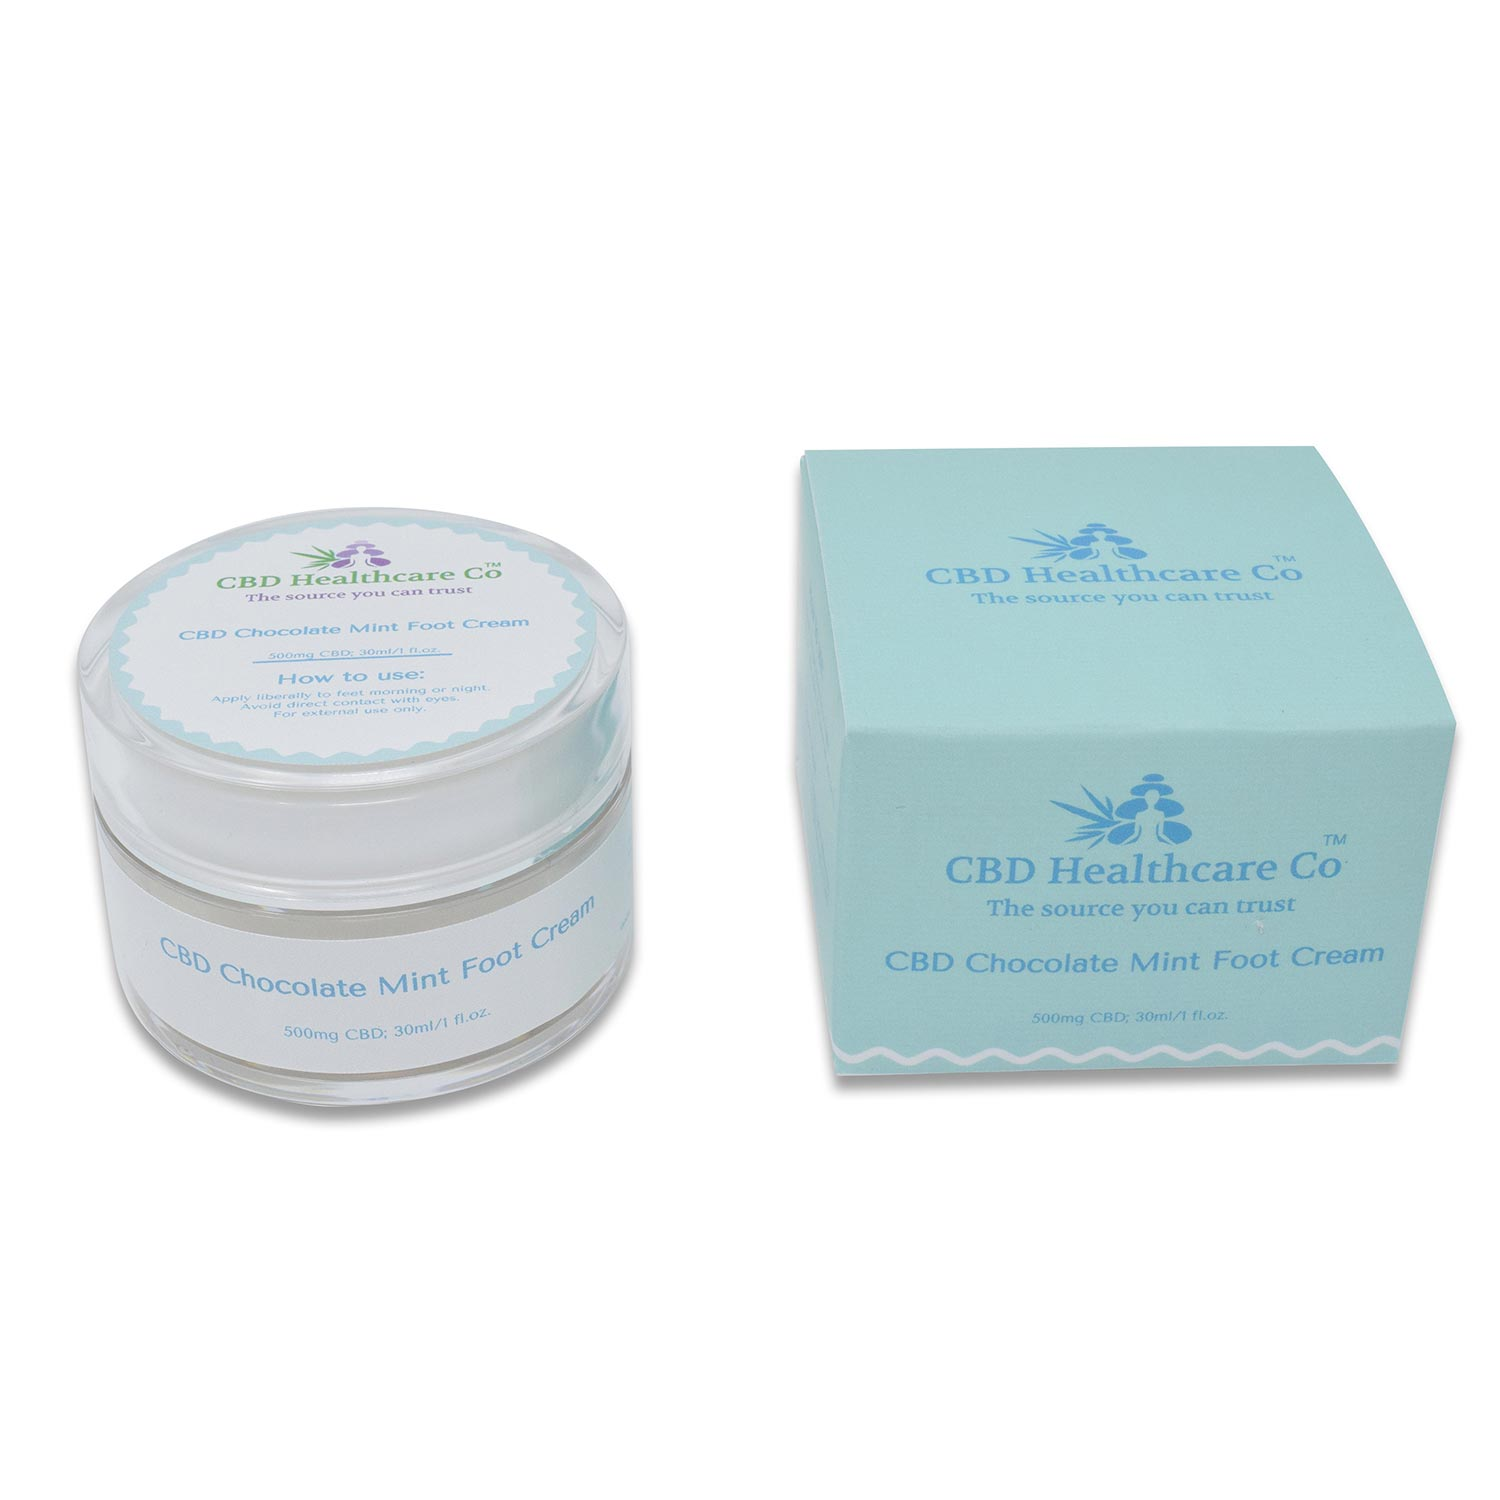 CBD Chocolate Mint Foot Cream